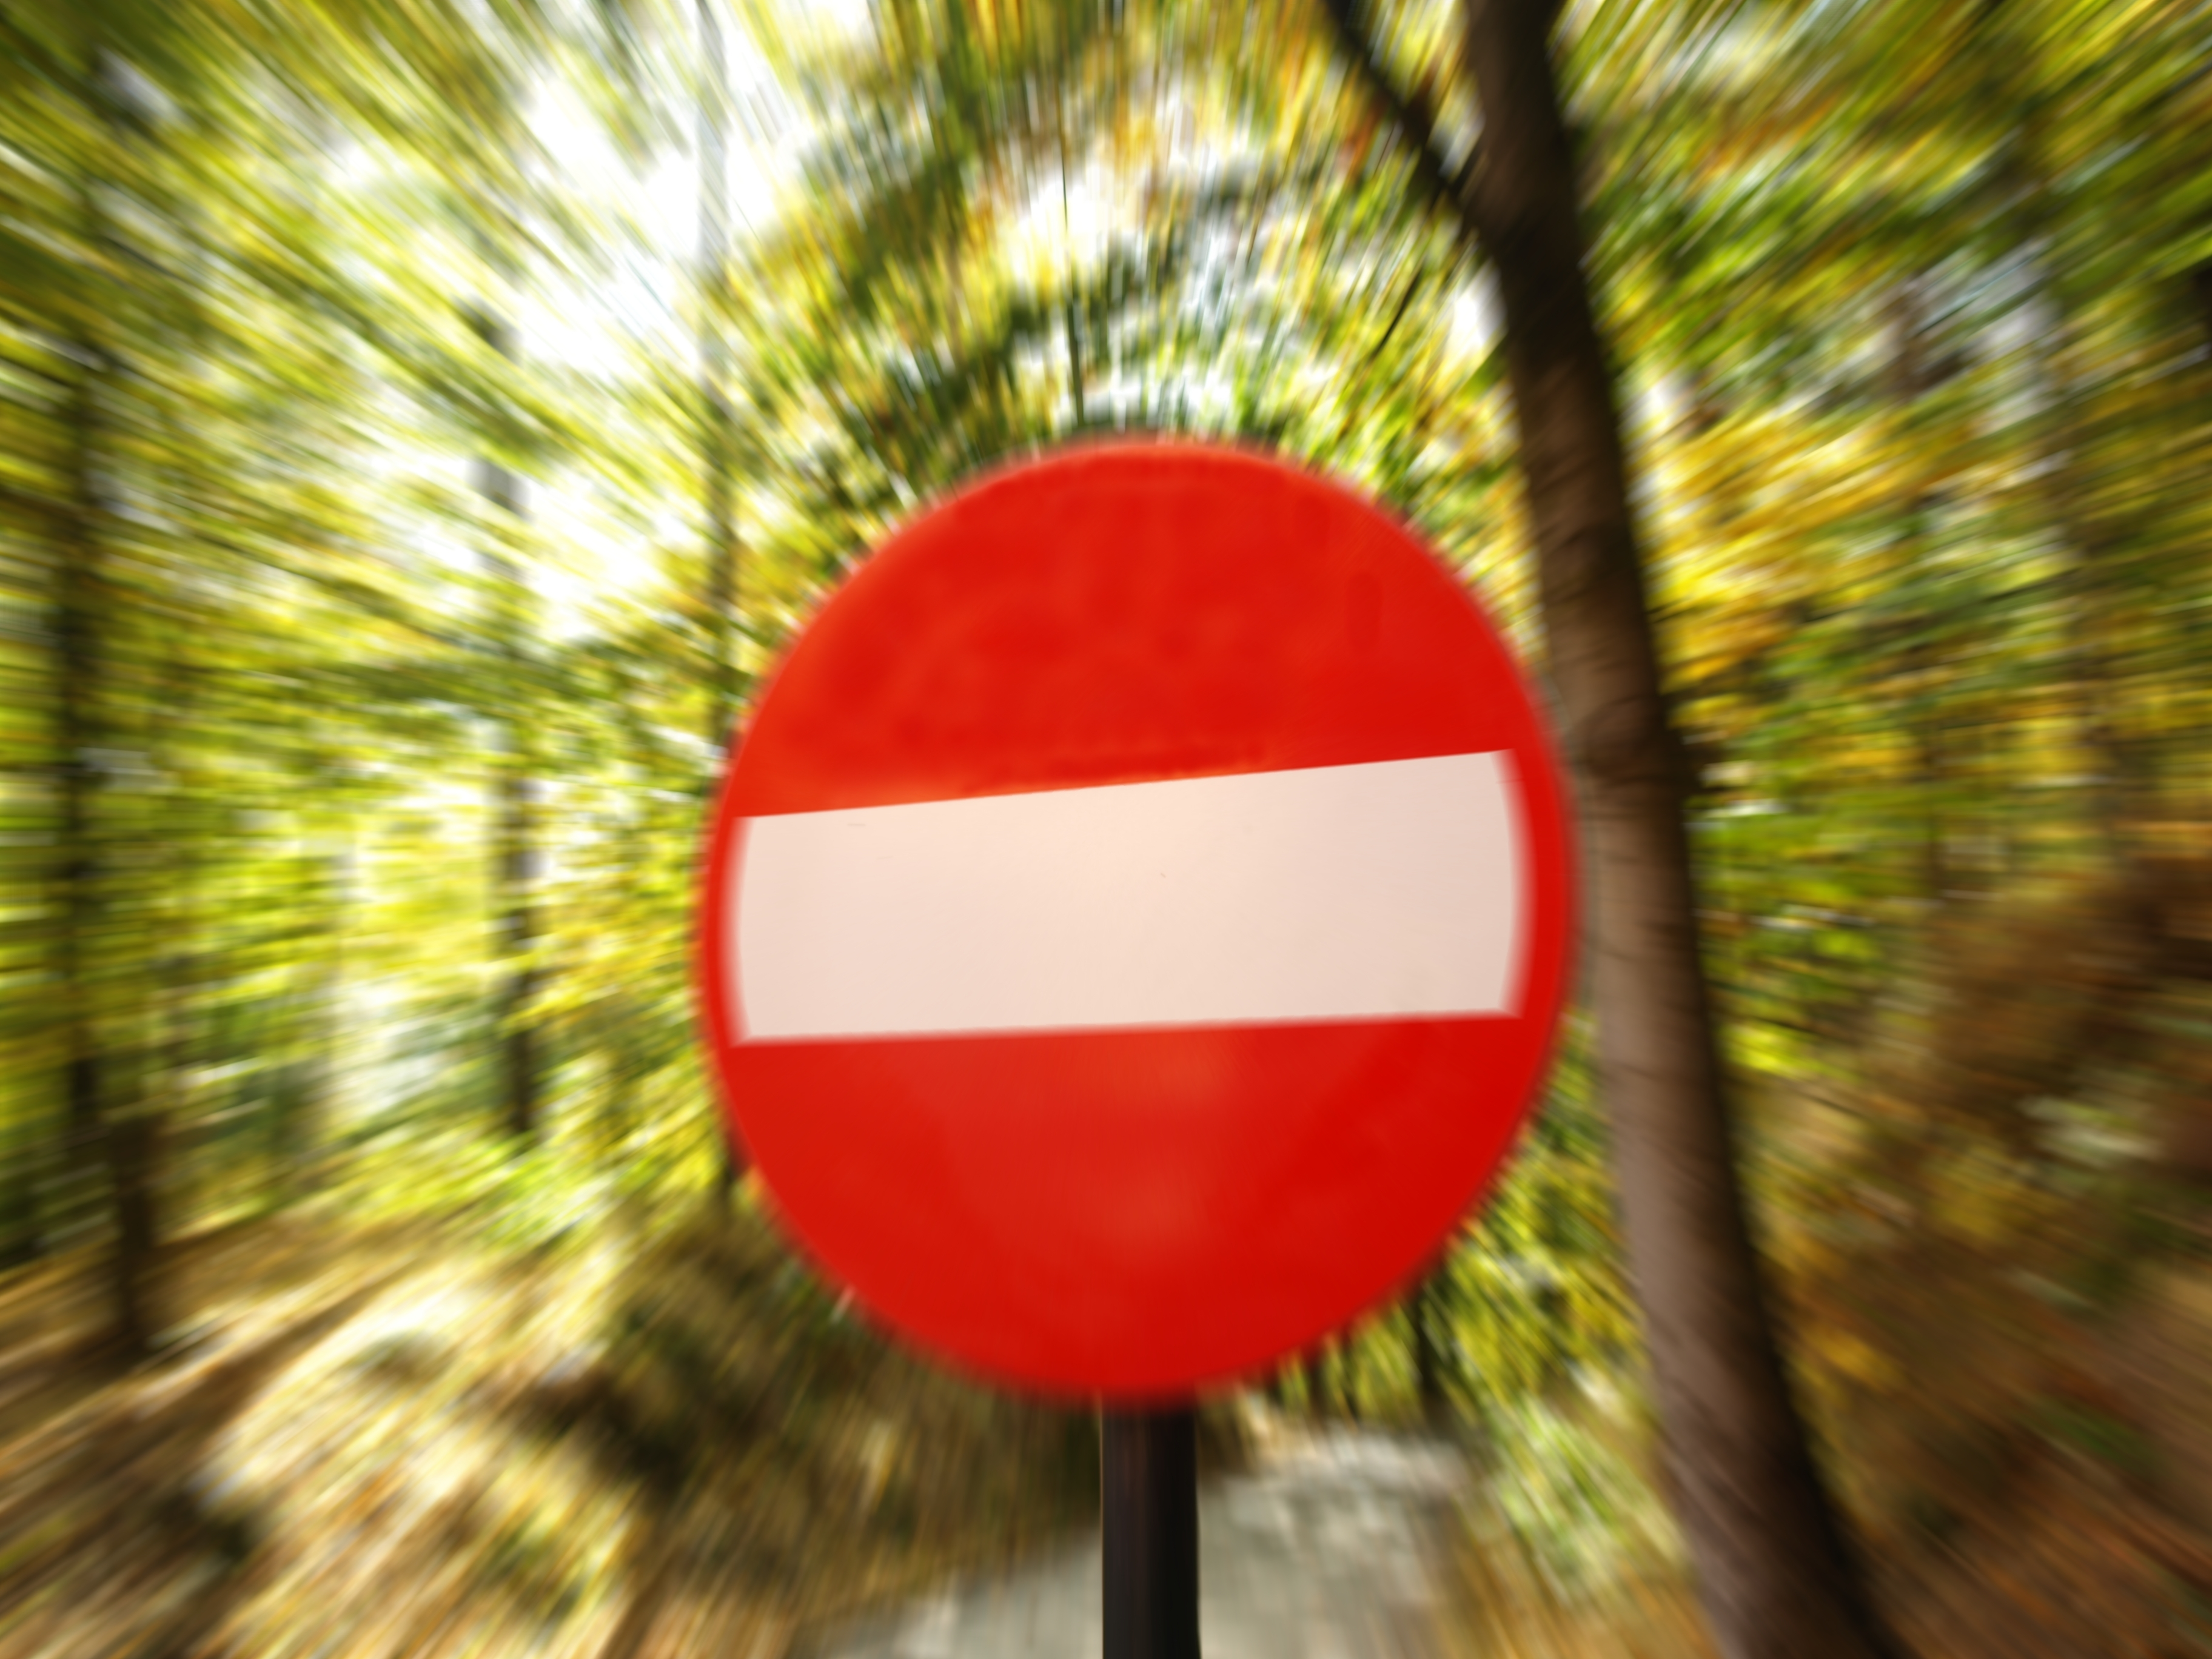 No enter danger stop very close, Danger, Sign, Way, Warning, HQ Photo